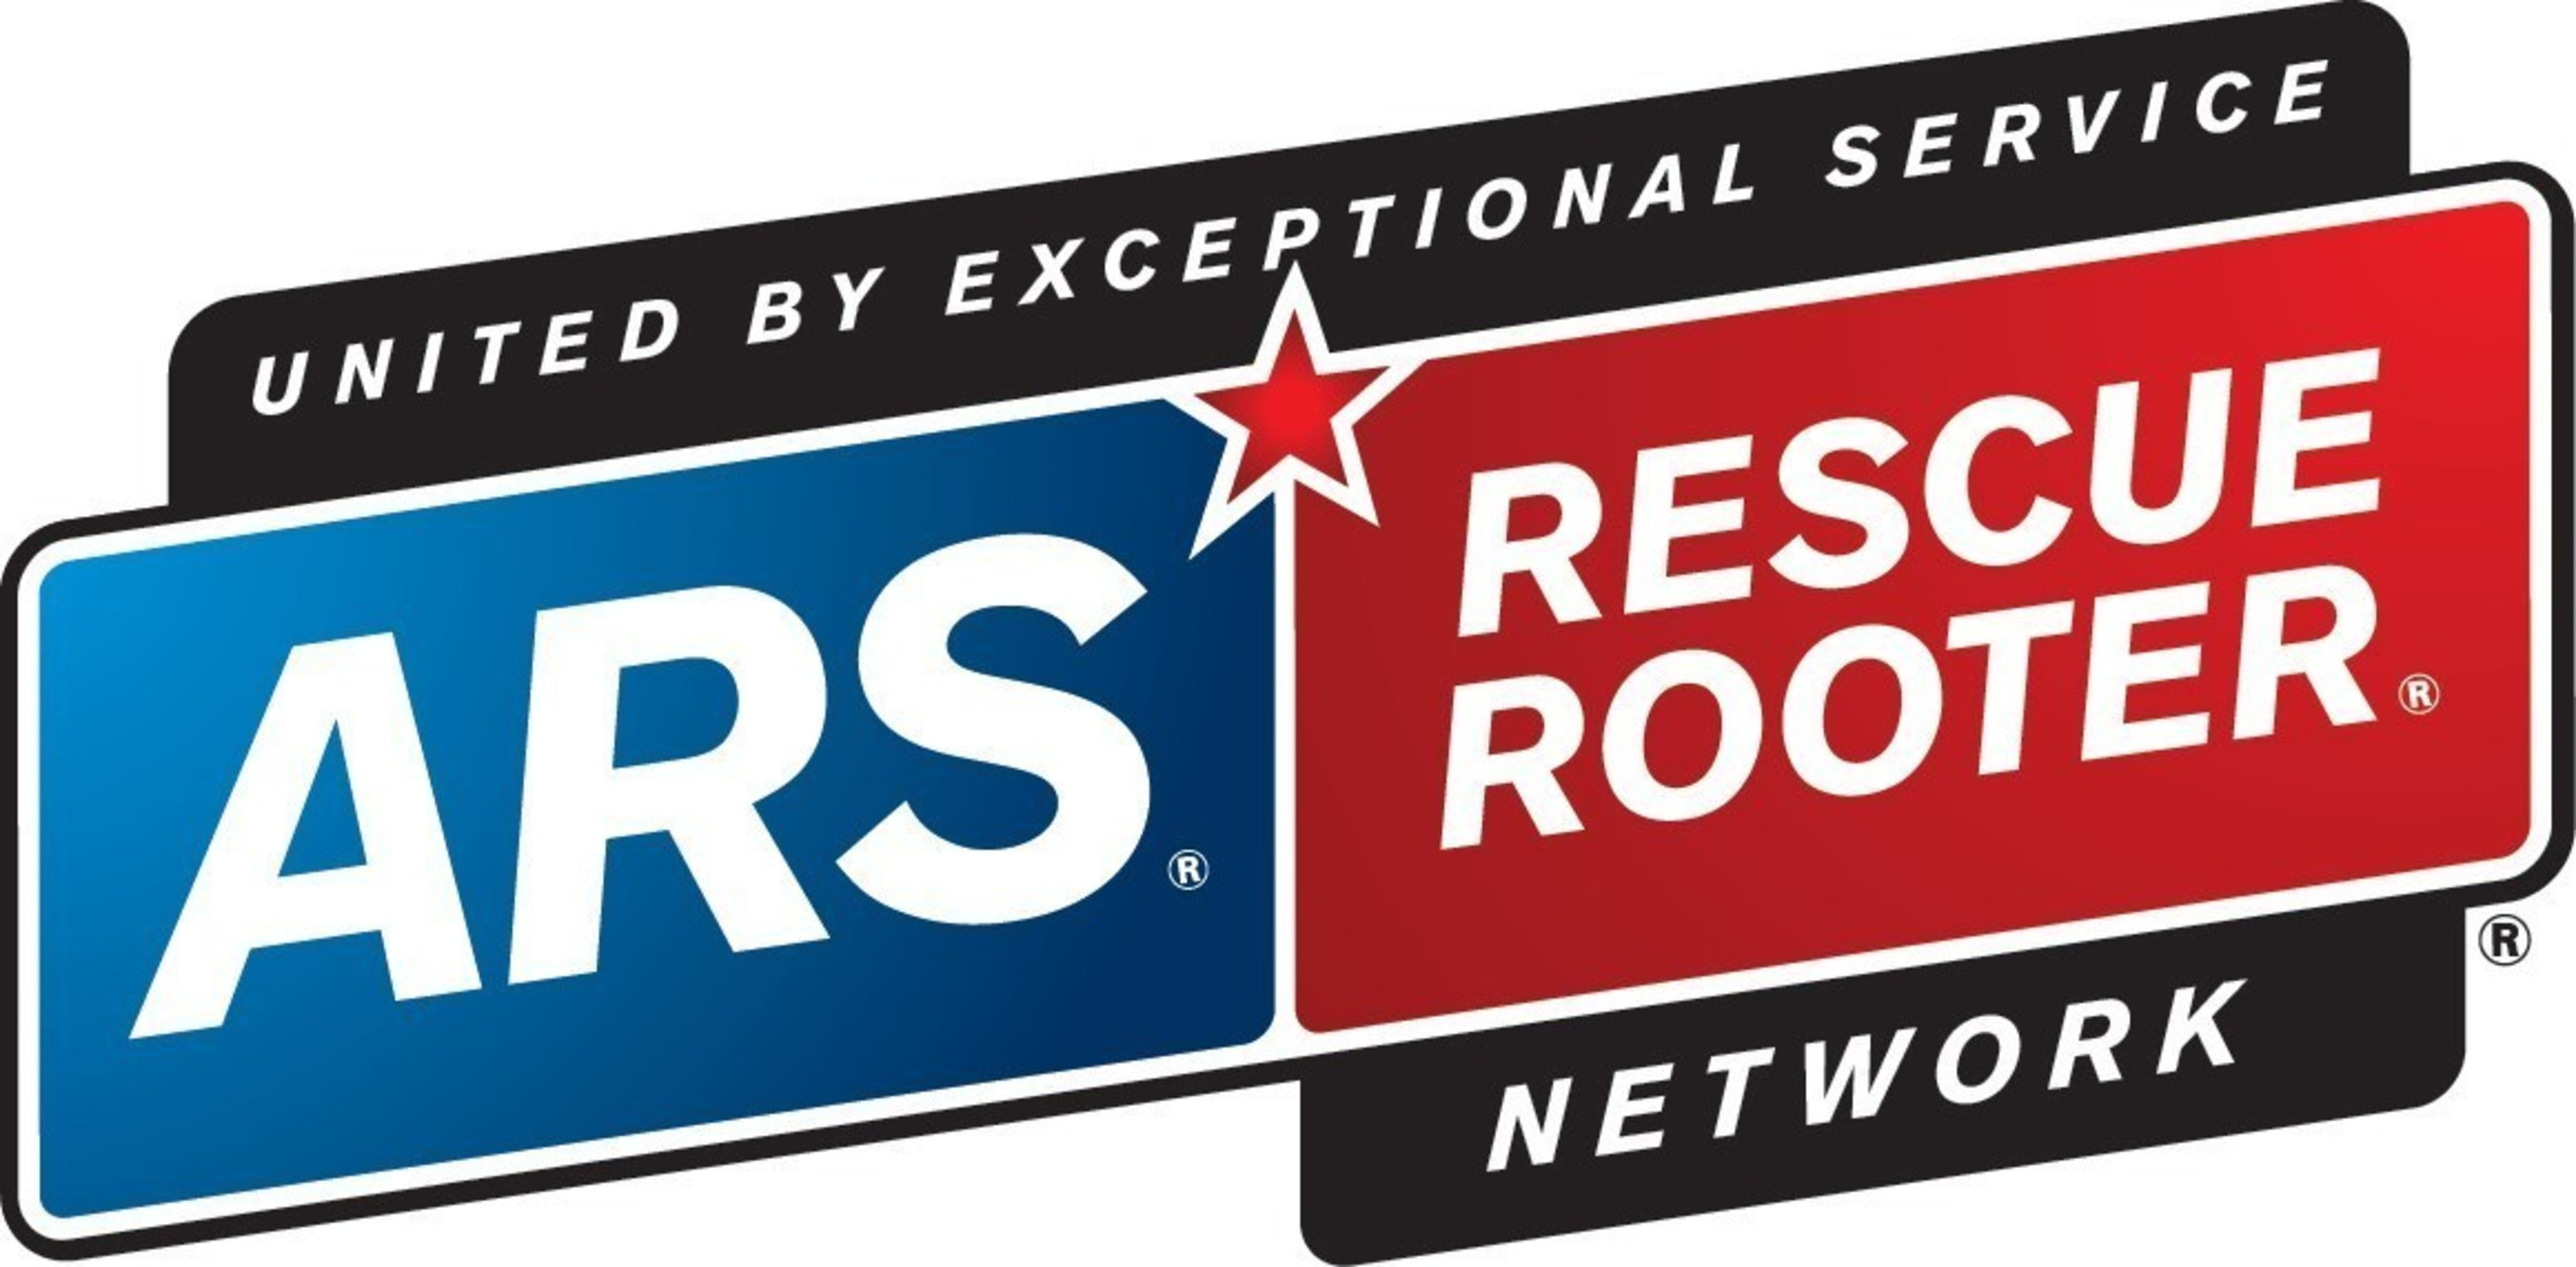 ARS operates a network of more than 65 company-owned, locally-managed service locations spanning 22 states, ...